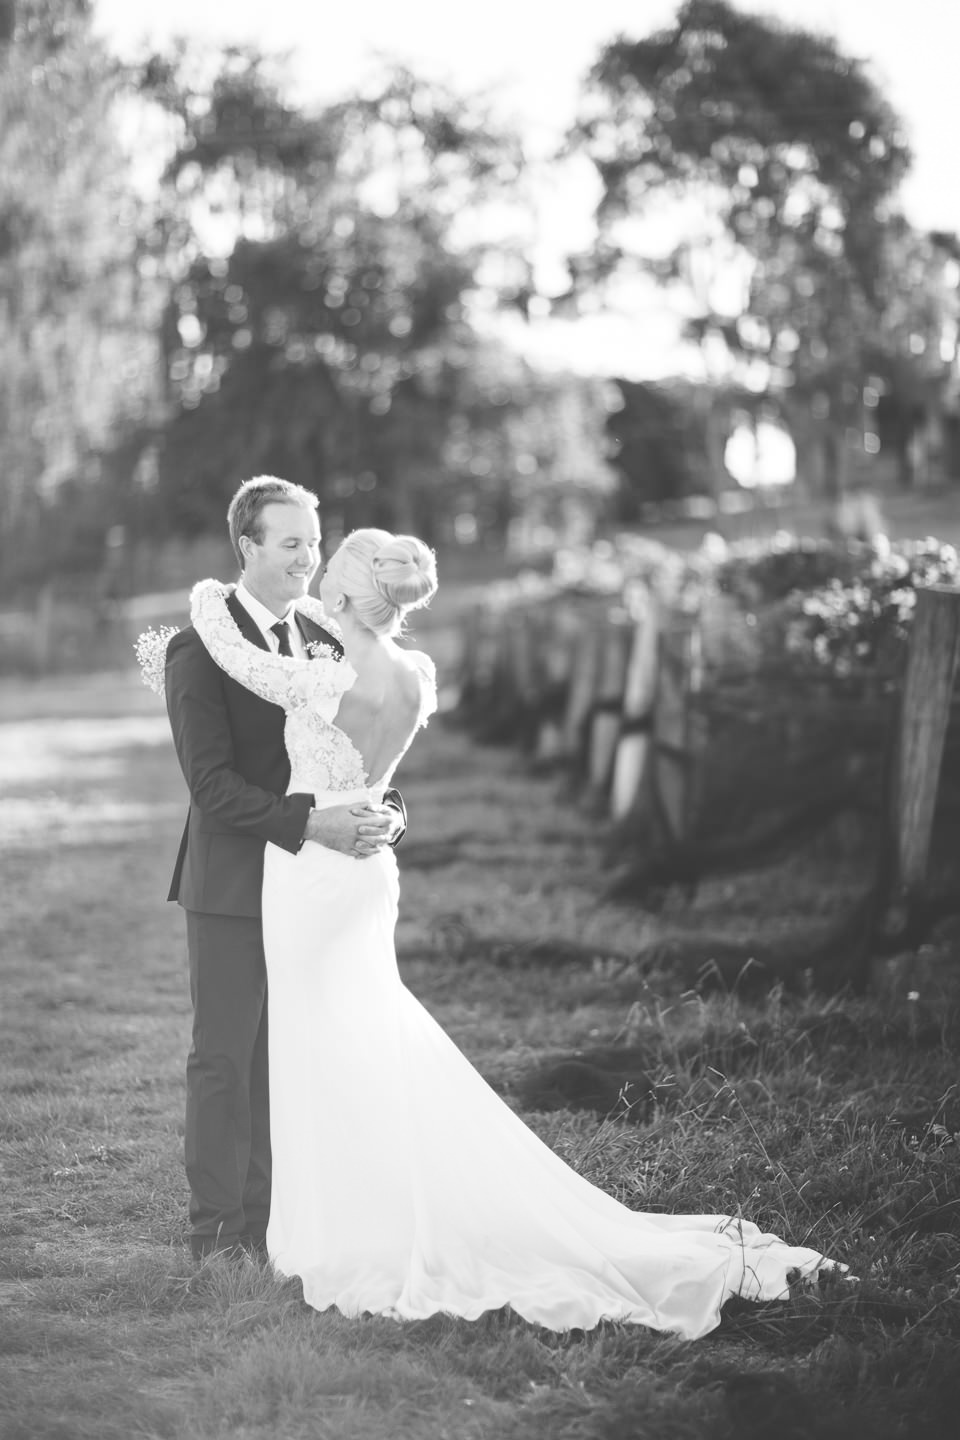 The-official-photographers-Sara&Drew-Vilagrad-Winery-_MG_2594